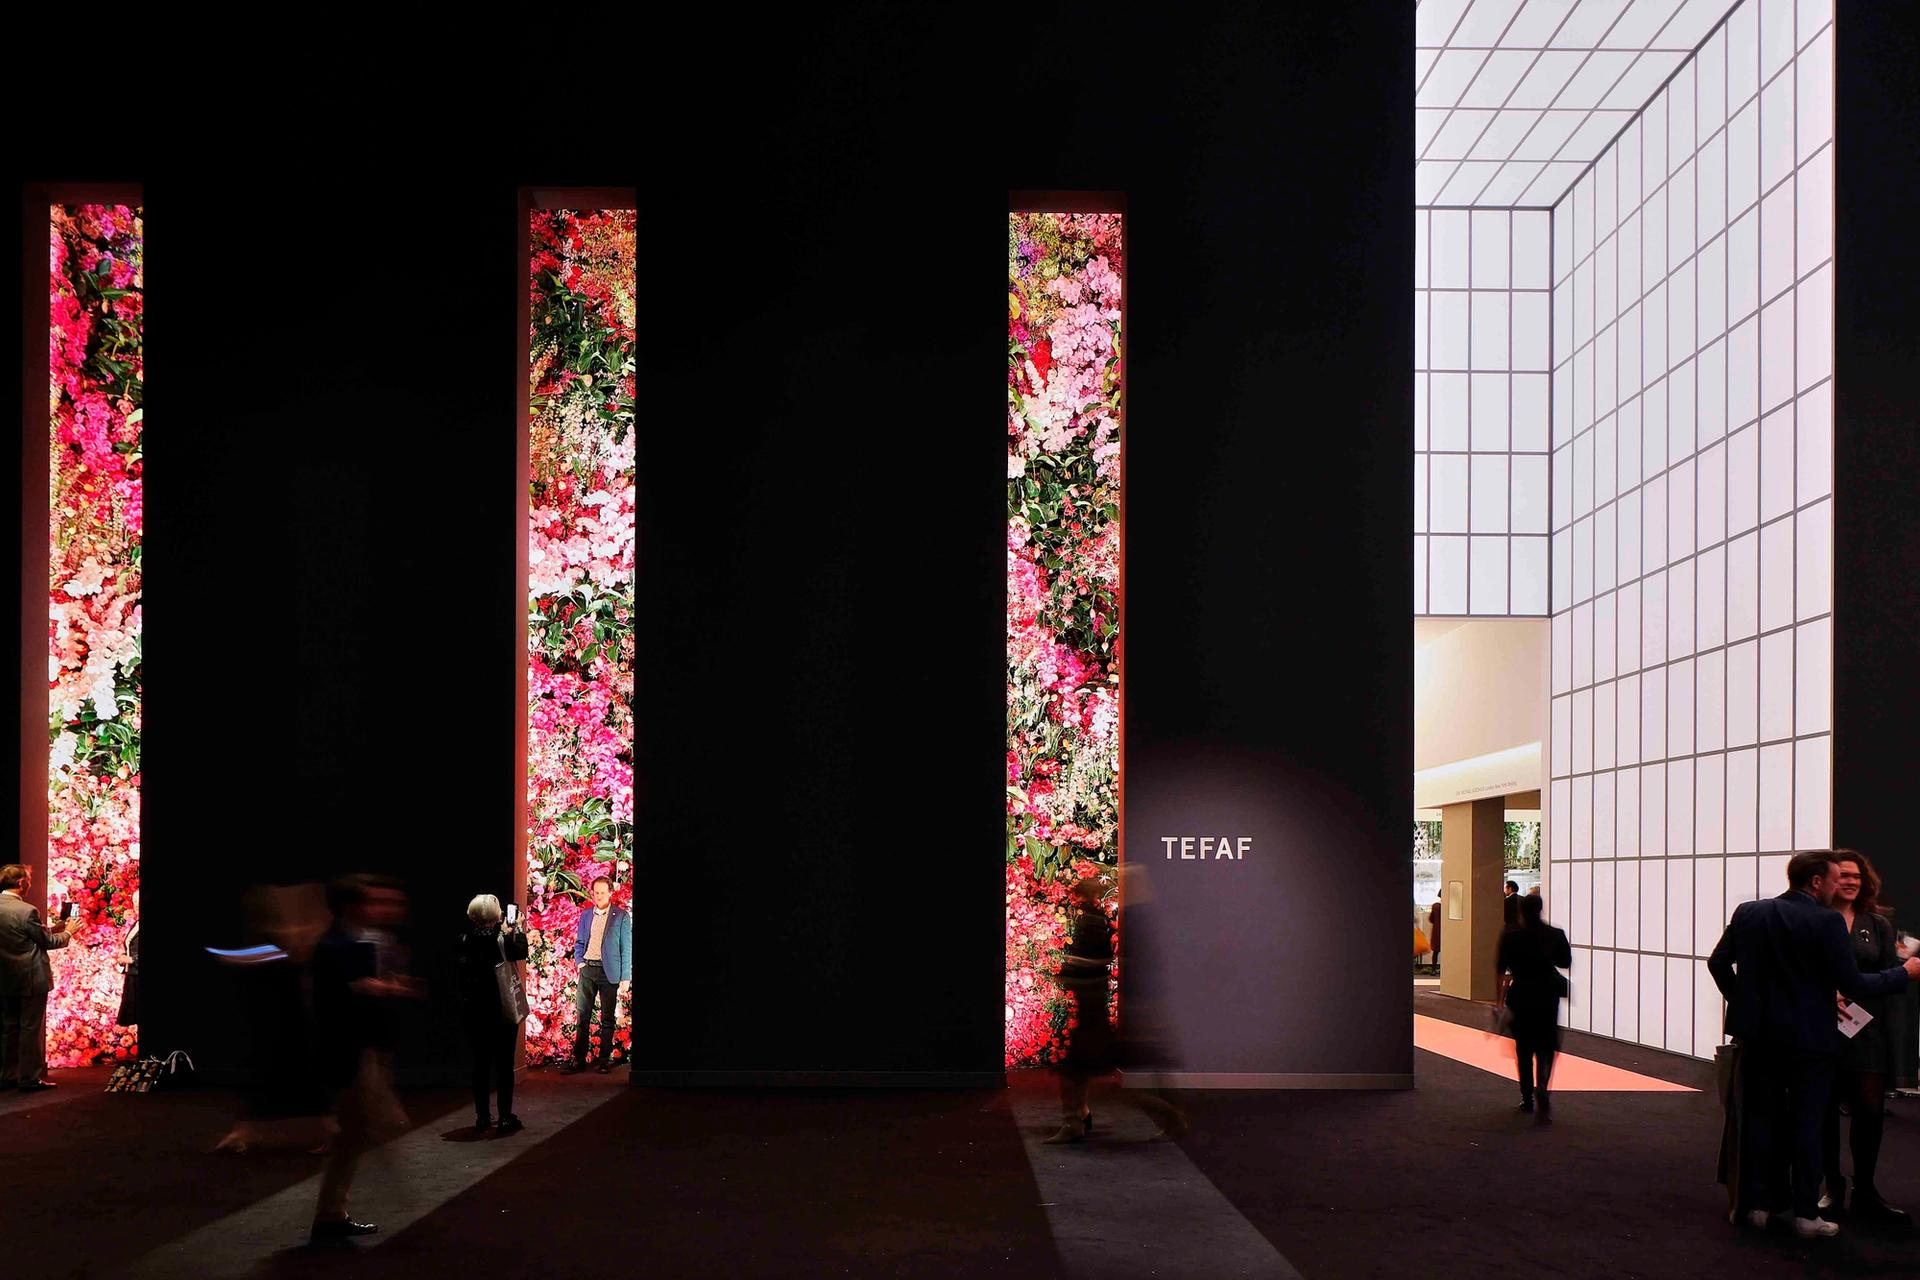 Tefaf Maastricht will now happen in September in the Mecc Courtesy of Tefaf